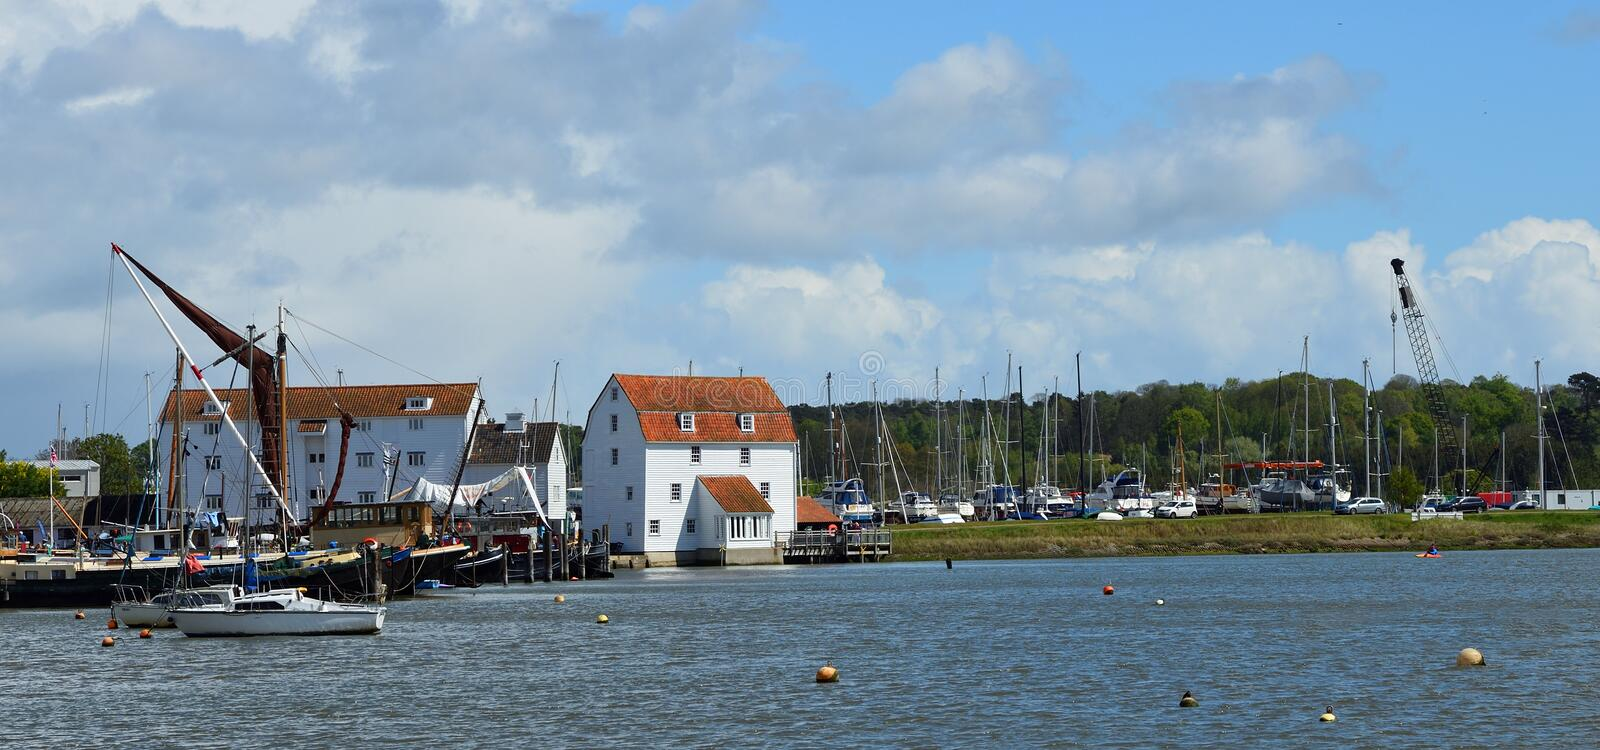 Panorama of the river Deben at Woodbridge with Tide Mill and Boats. Panorama of the river Deben at  Woodbridge with Tide Mill and Boats royalty free stock photos